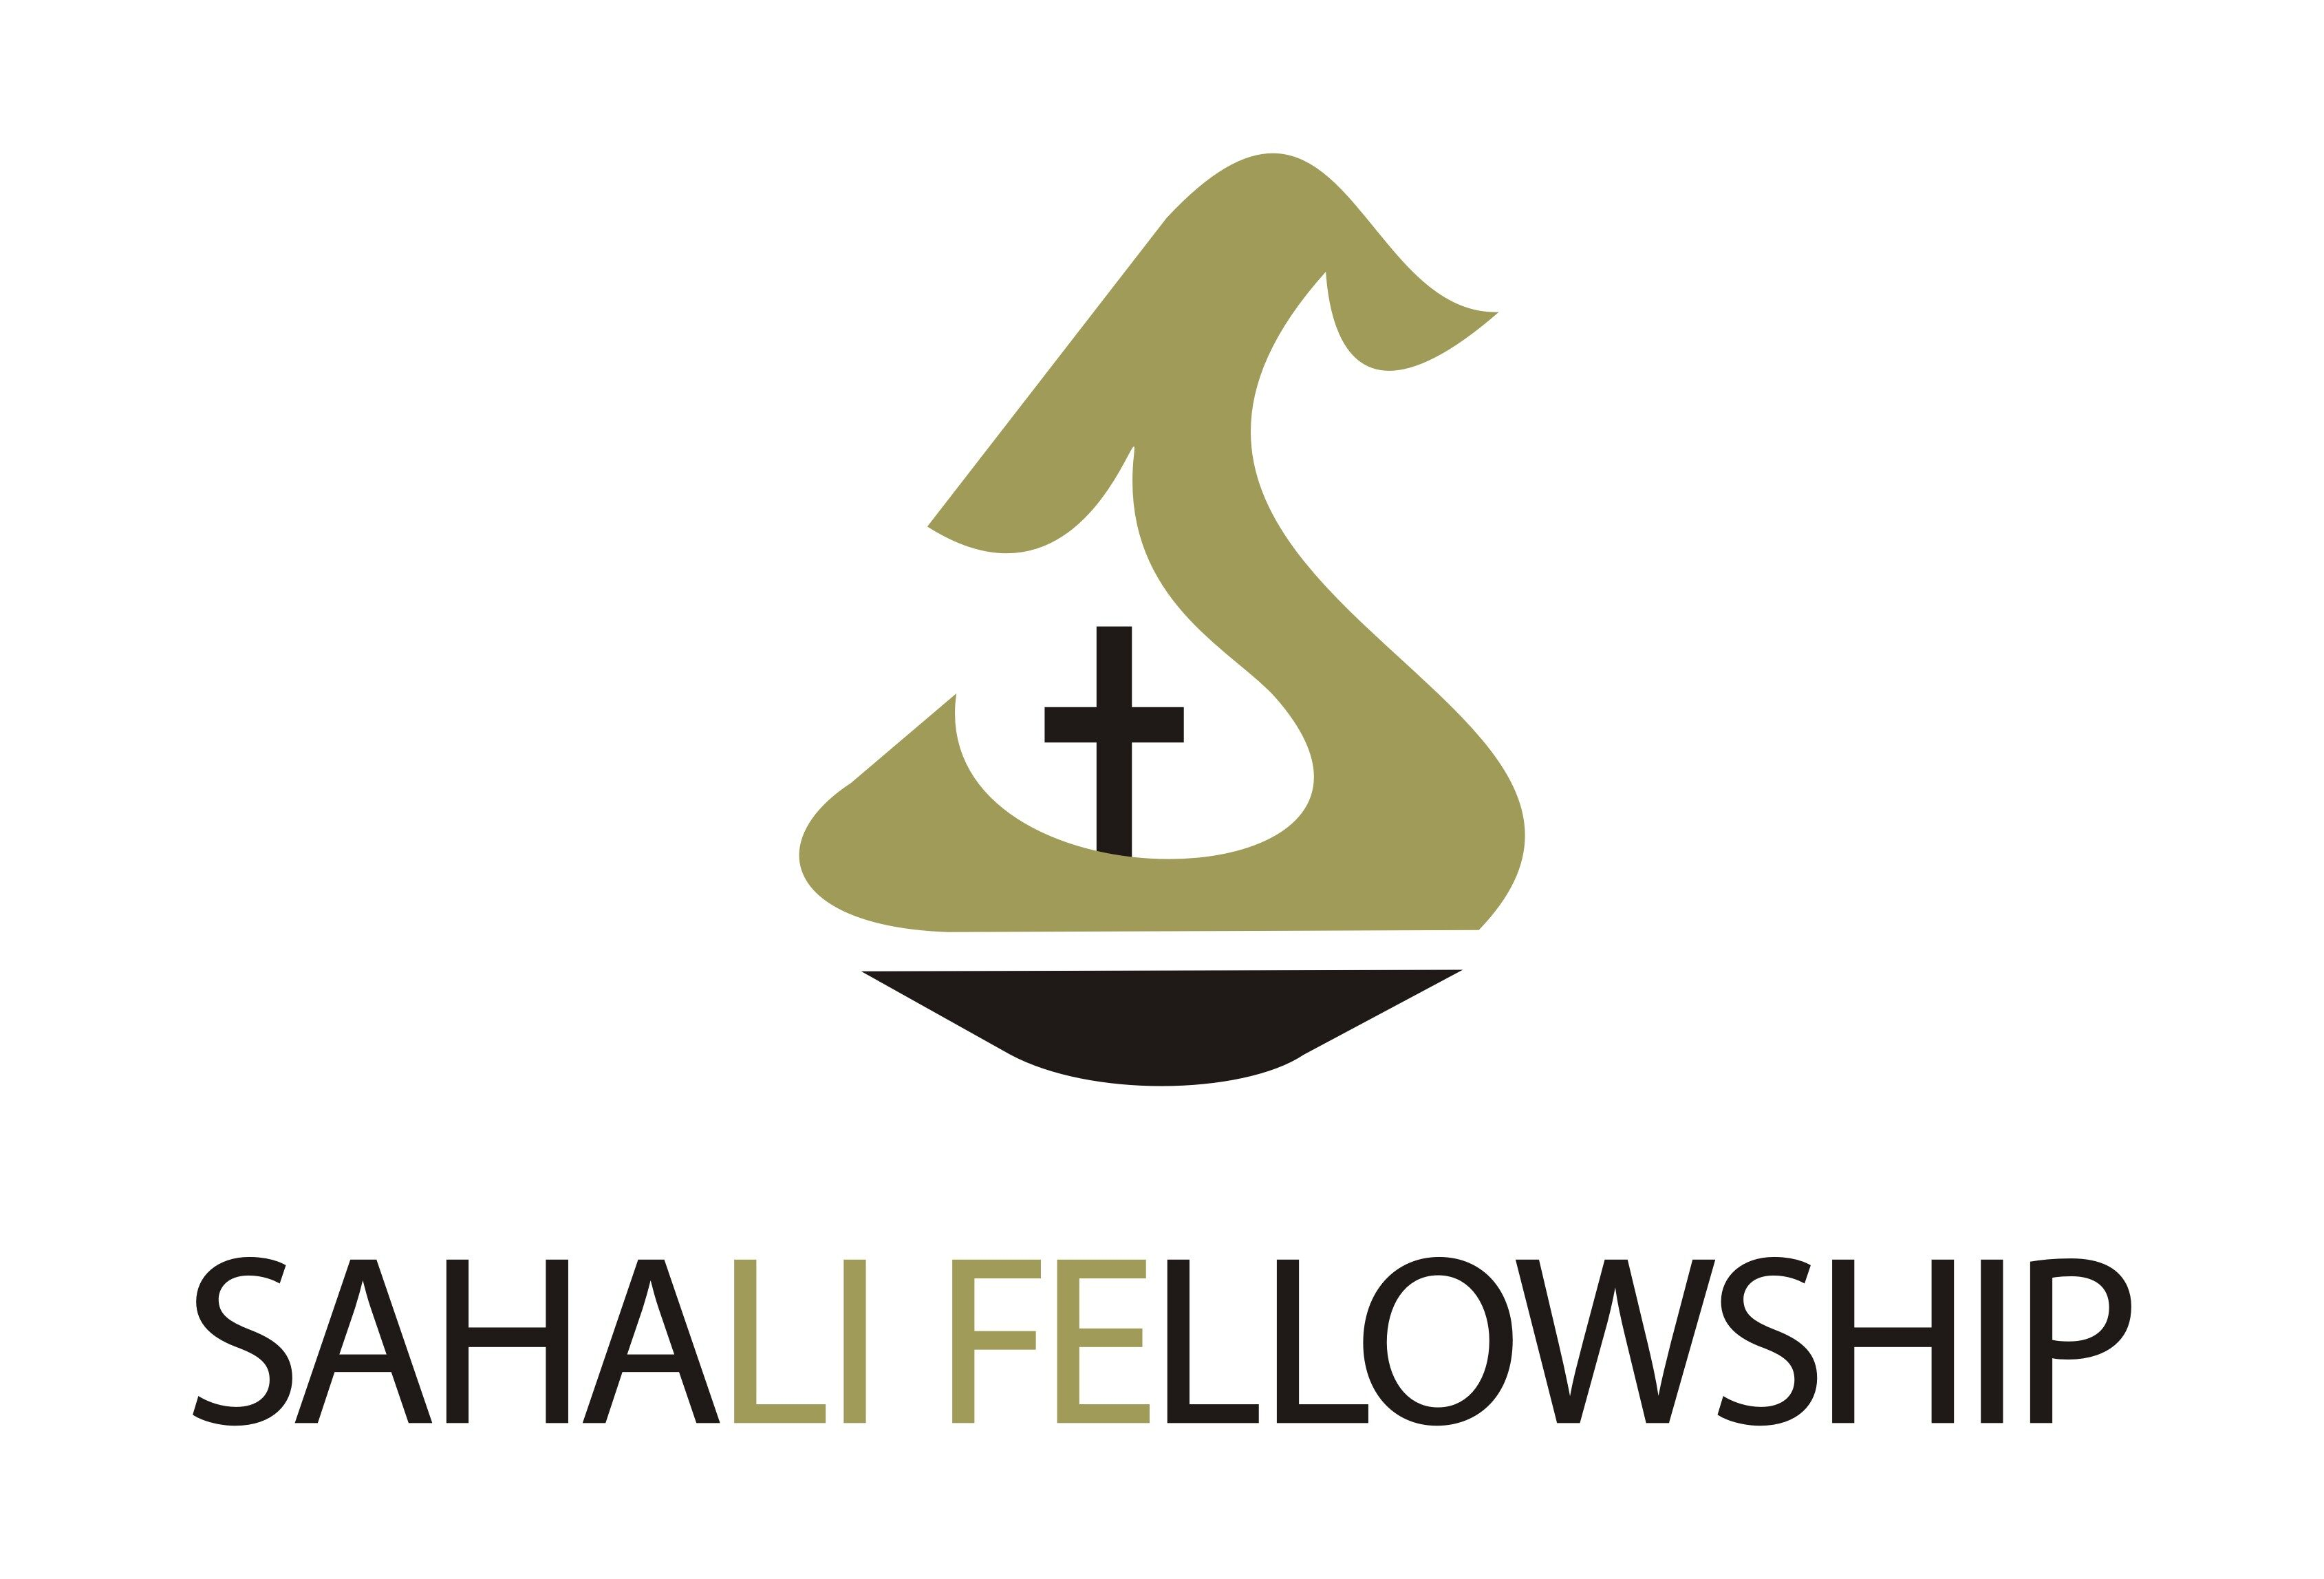 Sahali Fellowship